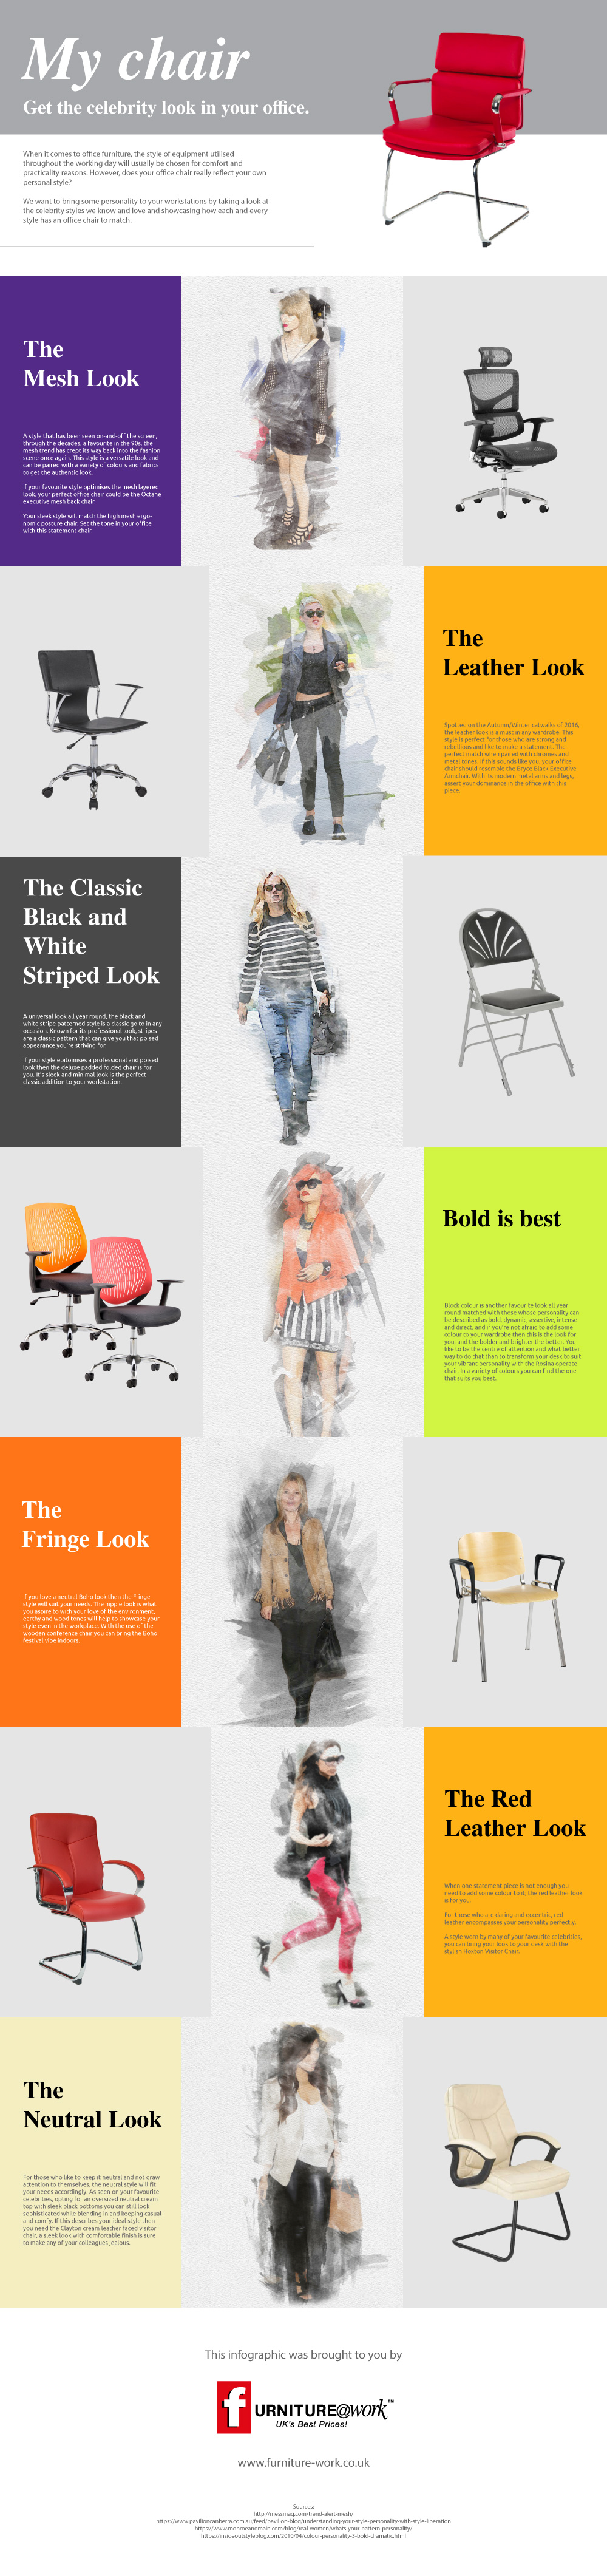 Furniture at work infographic on celebrity style